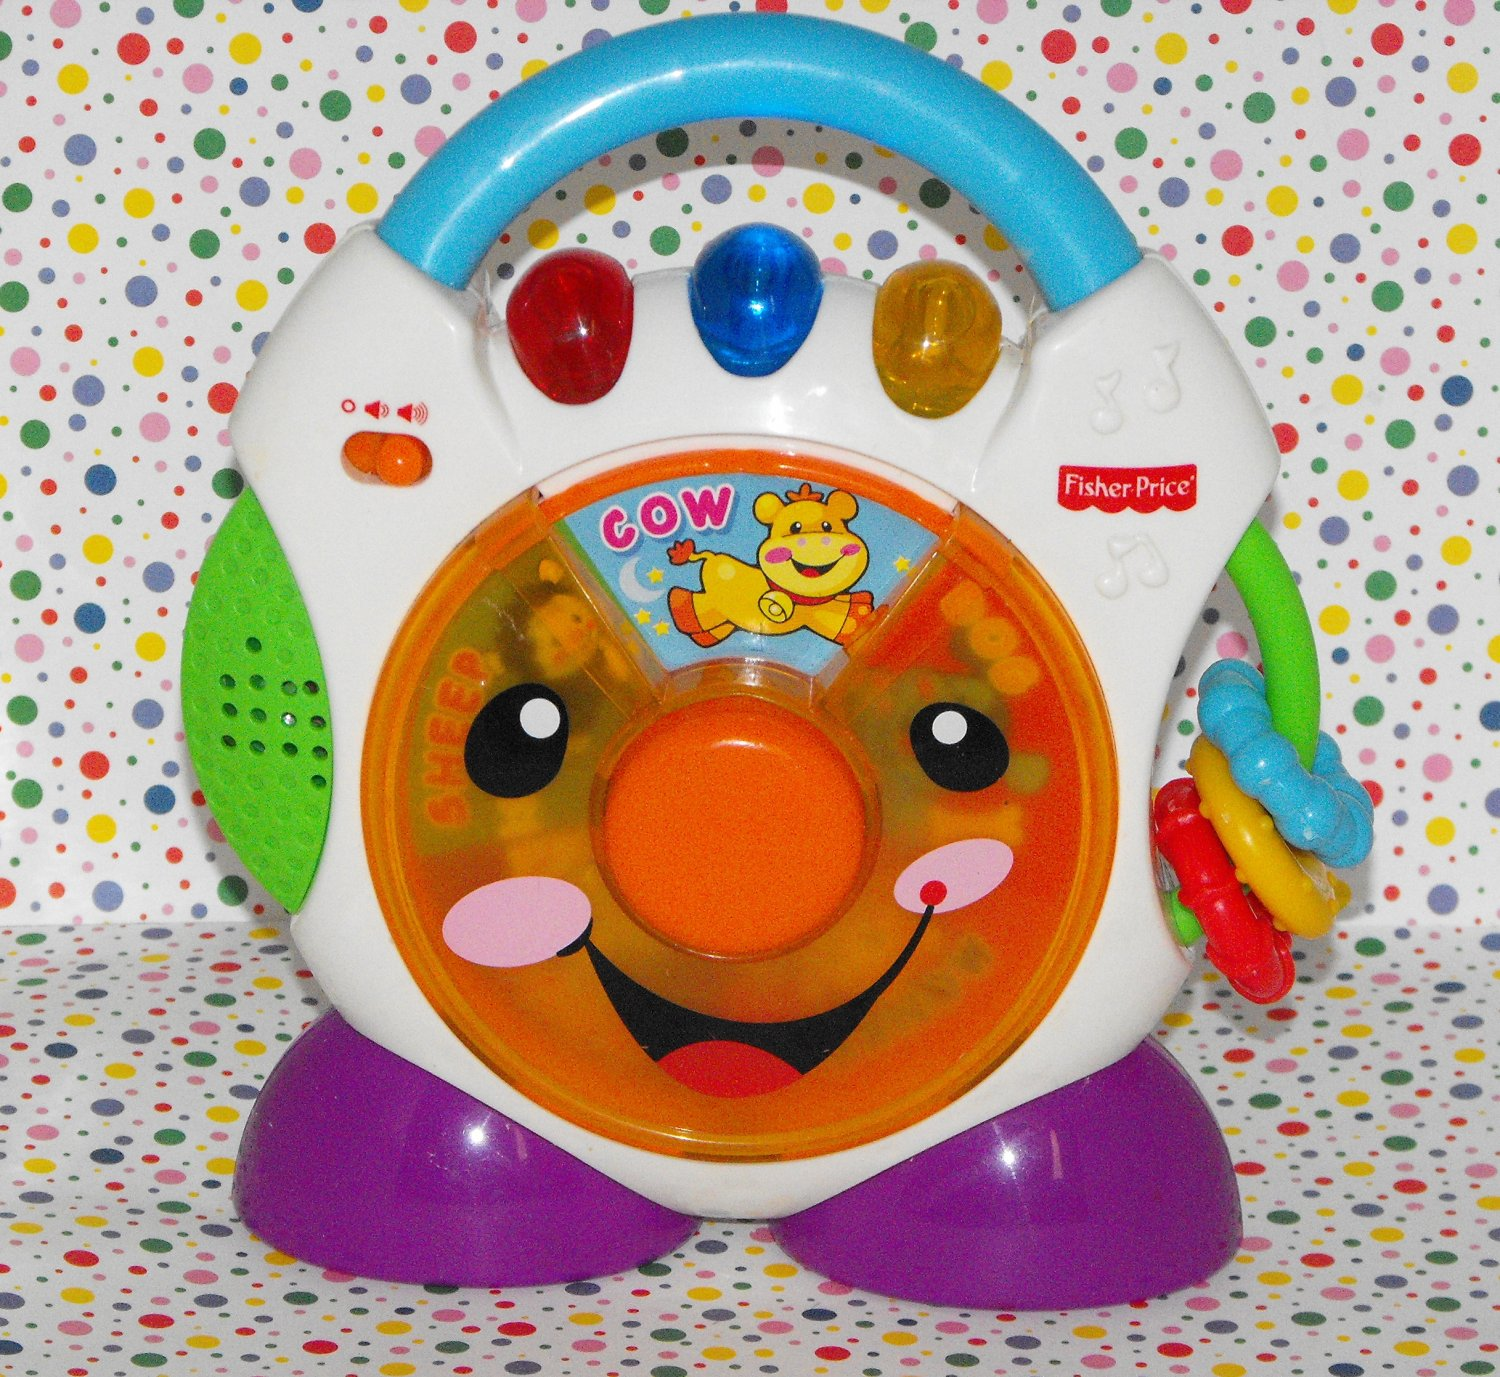 The Marisa Collection: Fisher Price Baby Toys  |Fisher Price Bus Nursery Rhymes